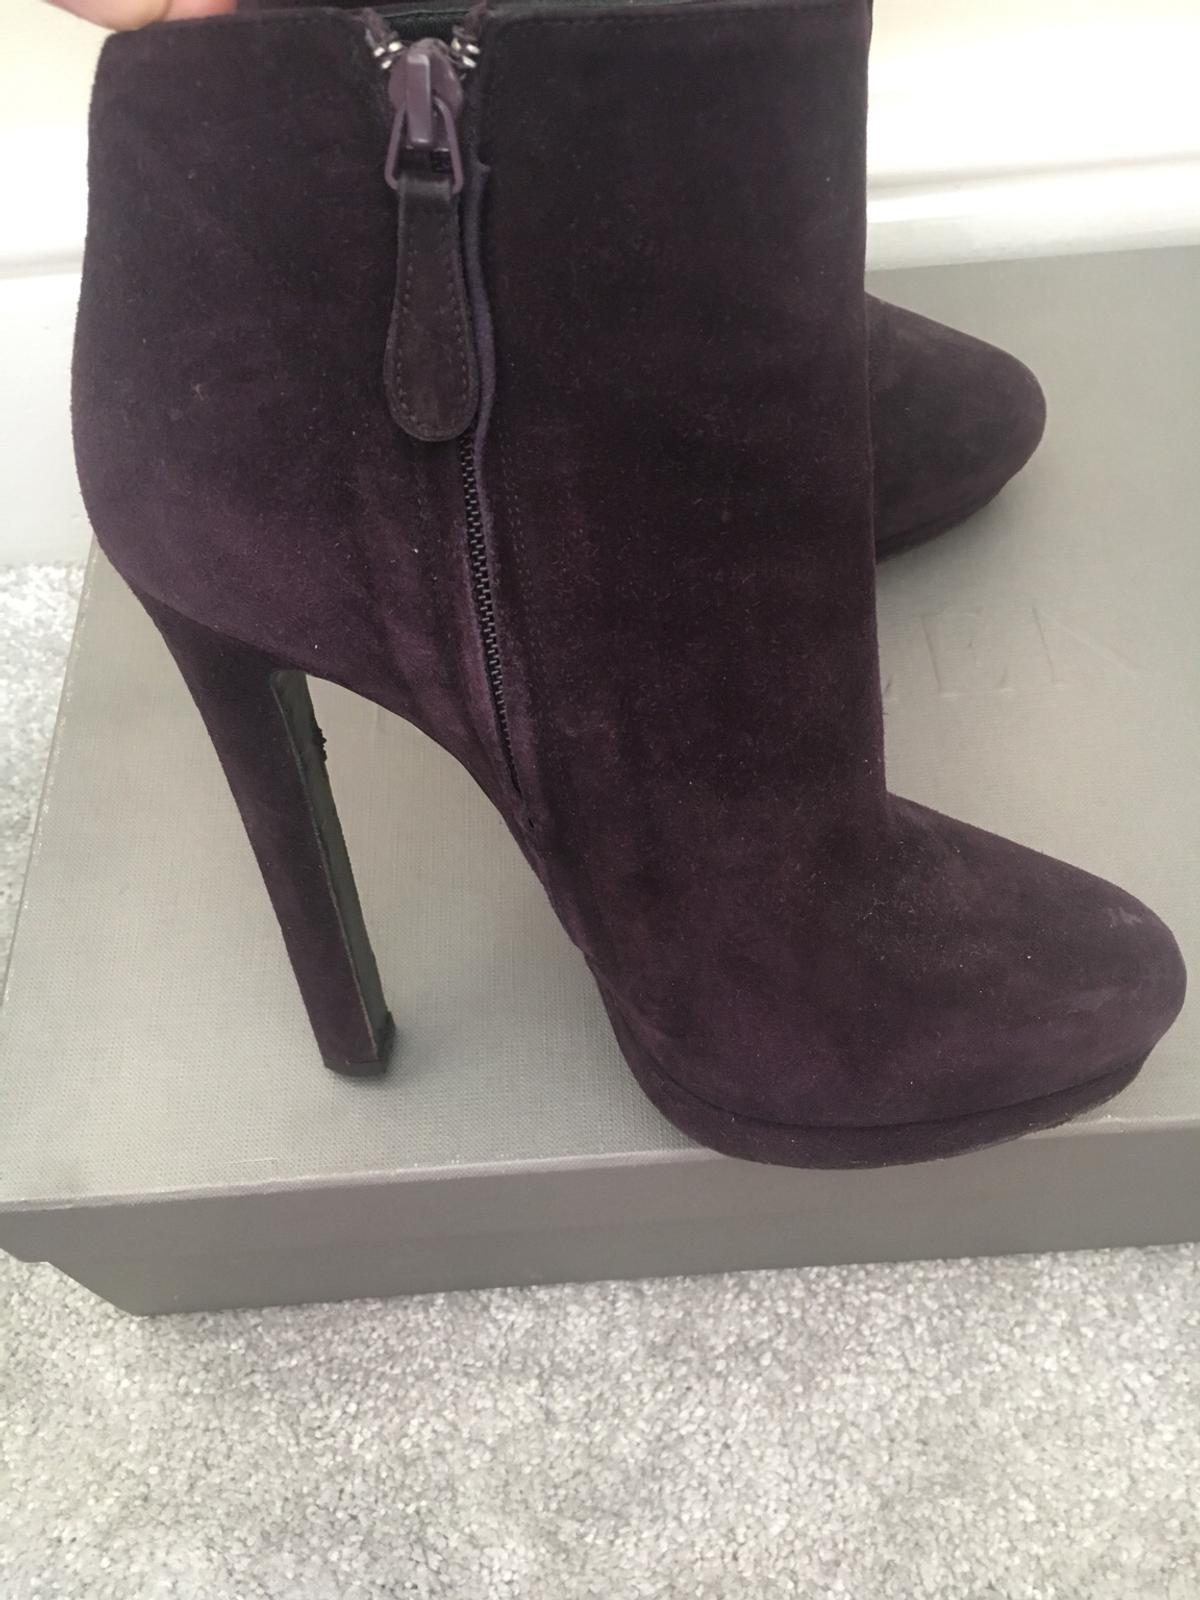 Alexander McQueen Suede Purple Boots in Trafford for £295.00